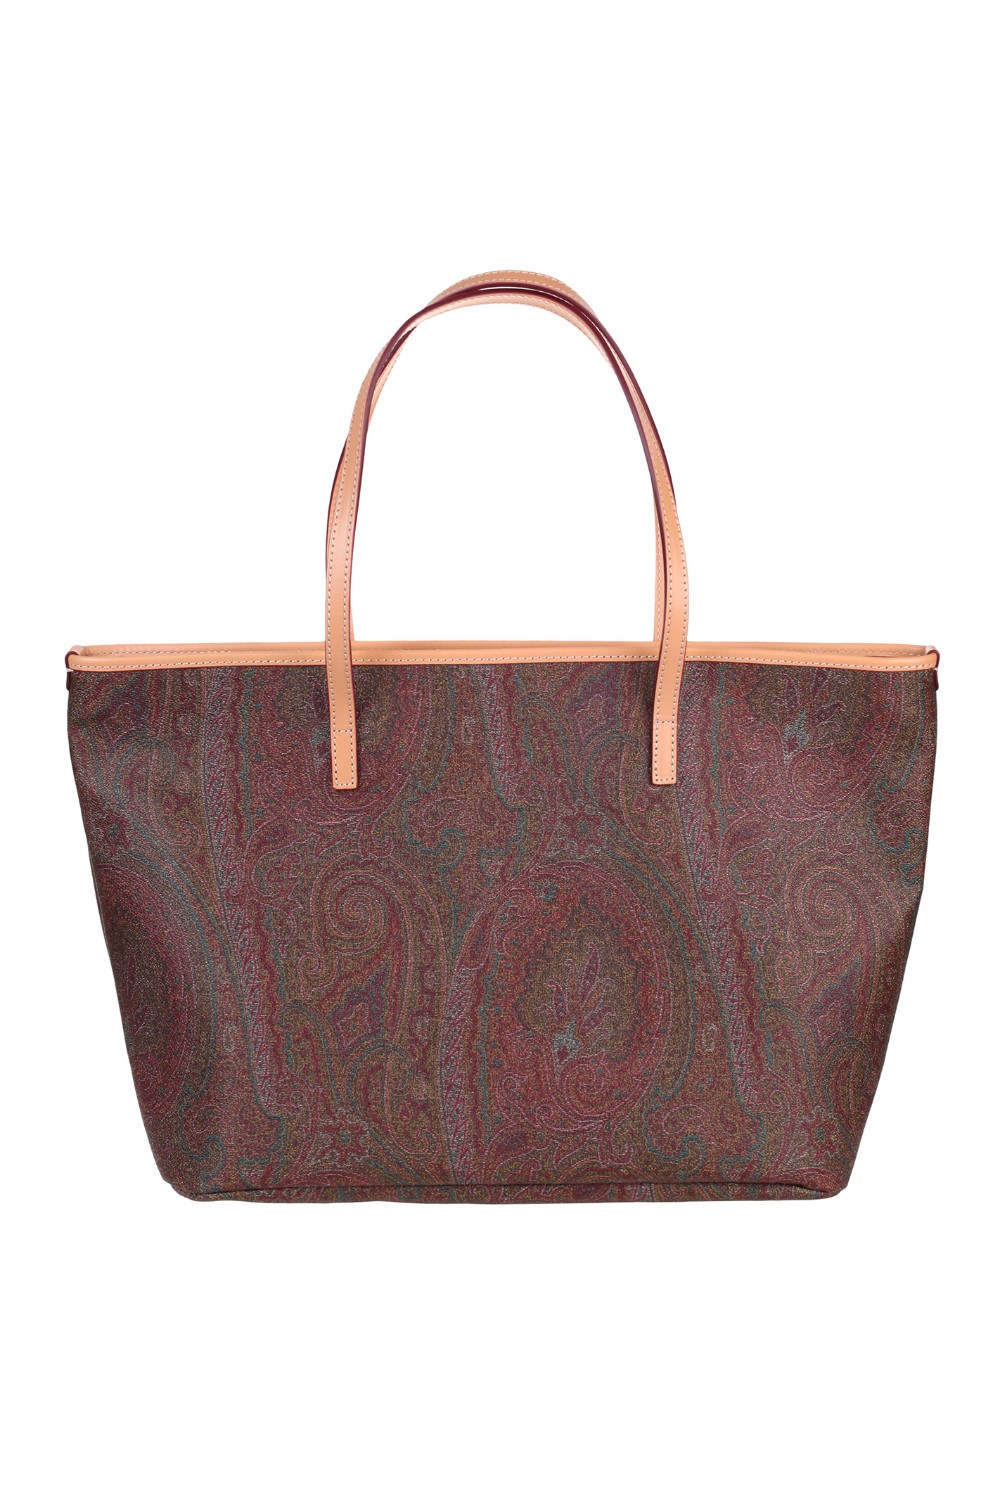 shop ETRO  Borsa: Etro Shopping bag Medium. Chiusura con zip. Iconica stampa Paisley. Tasca interna con due scomparti. Tasca interna con zip. Dettagli in pelle. Composizione dettagli : 100% pelle. Dimensioni: L 34cm x A 27cm x P 15cm. Made in Italy.. 0D088 8010-0600 number 5654661